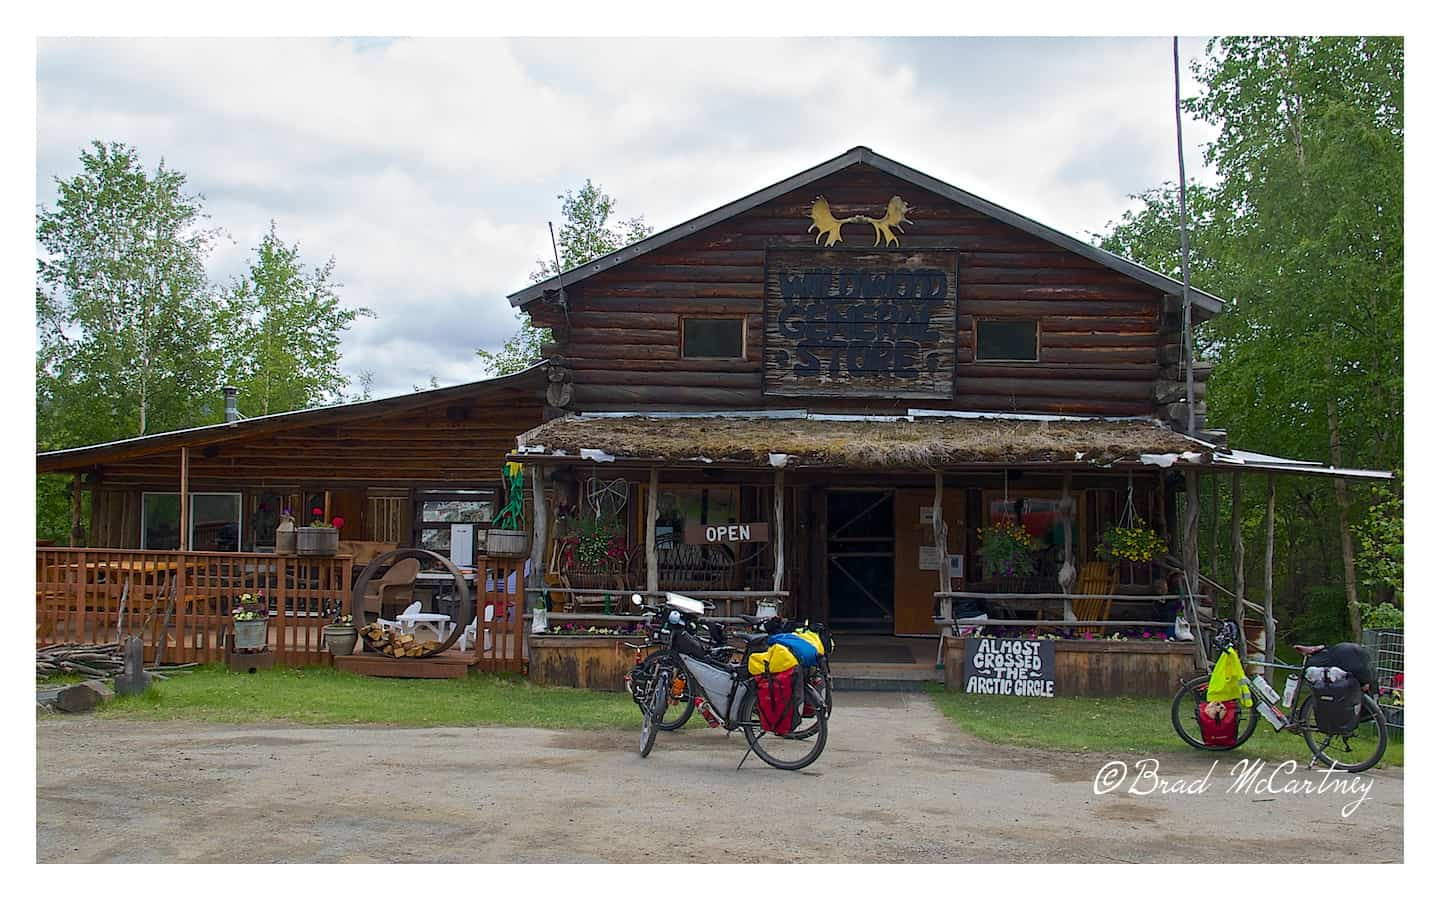 Arctic Trading Post on route